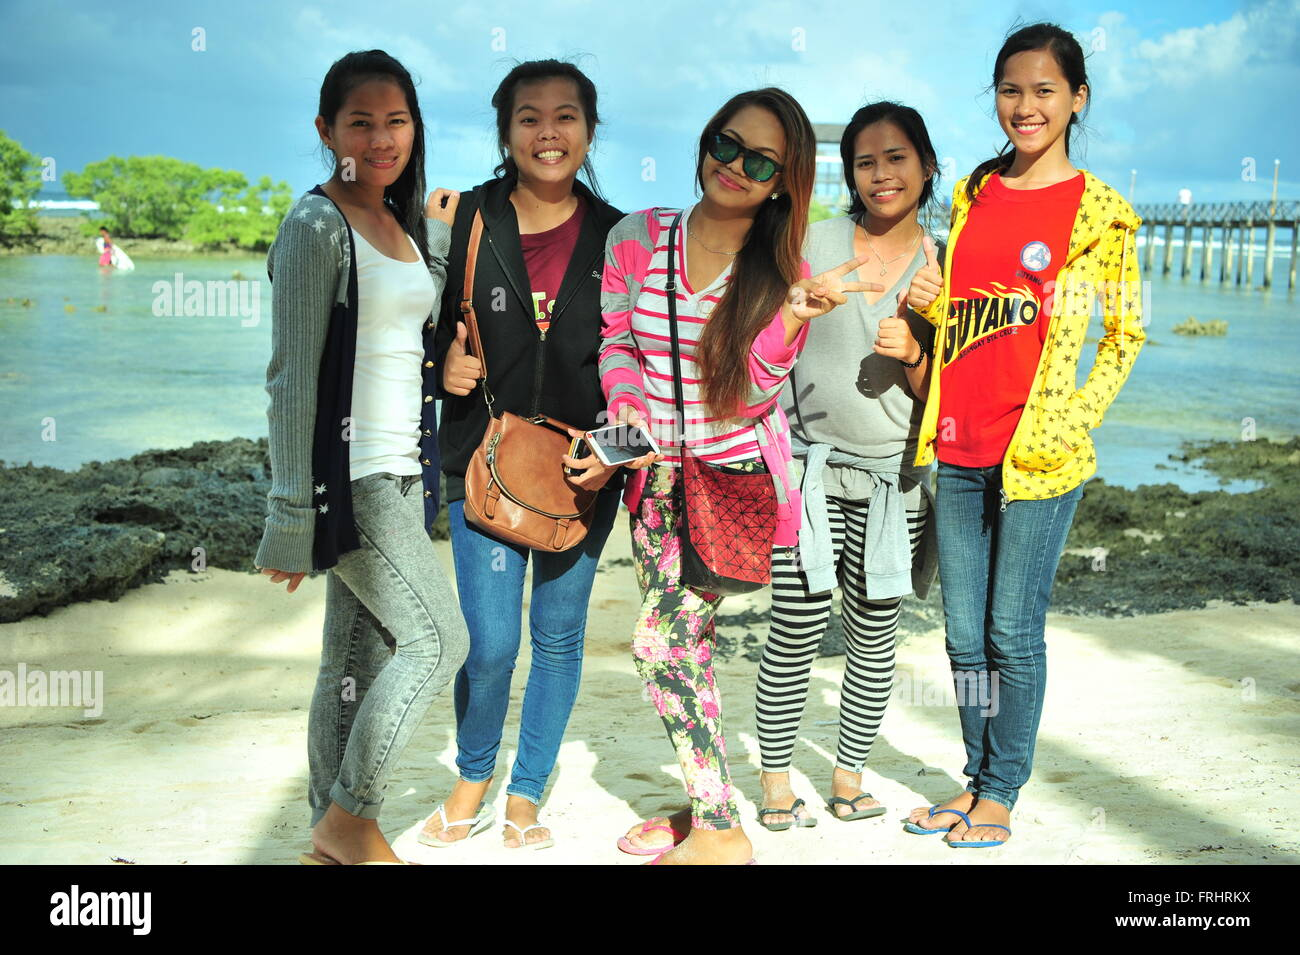 Filipinas are posing, Cloud 9, Siargao Island, Philippines. Editorial use only. - Stock Image